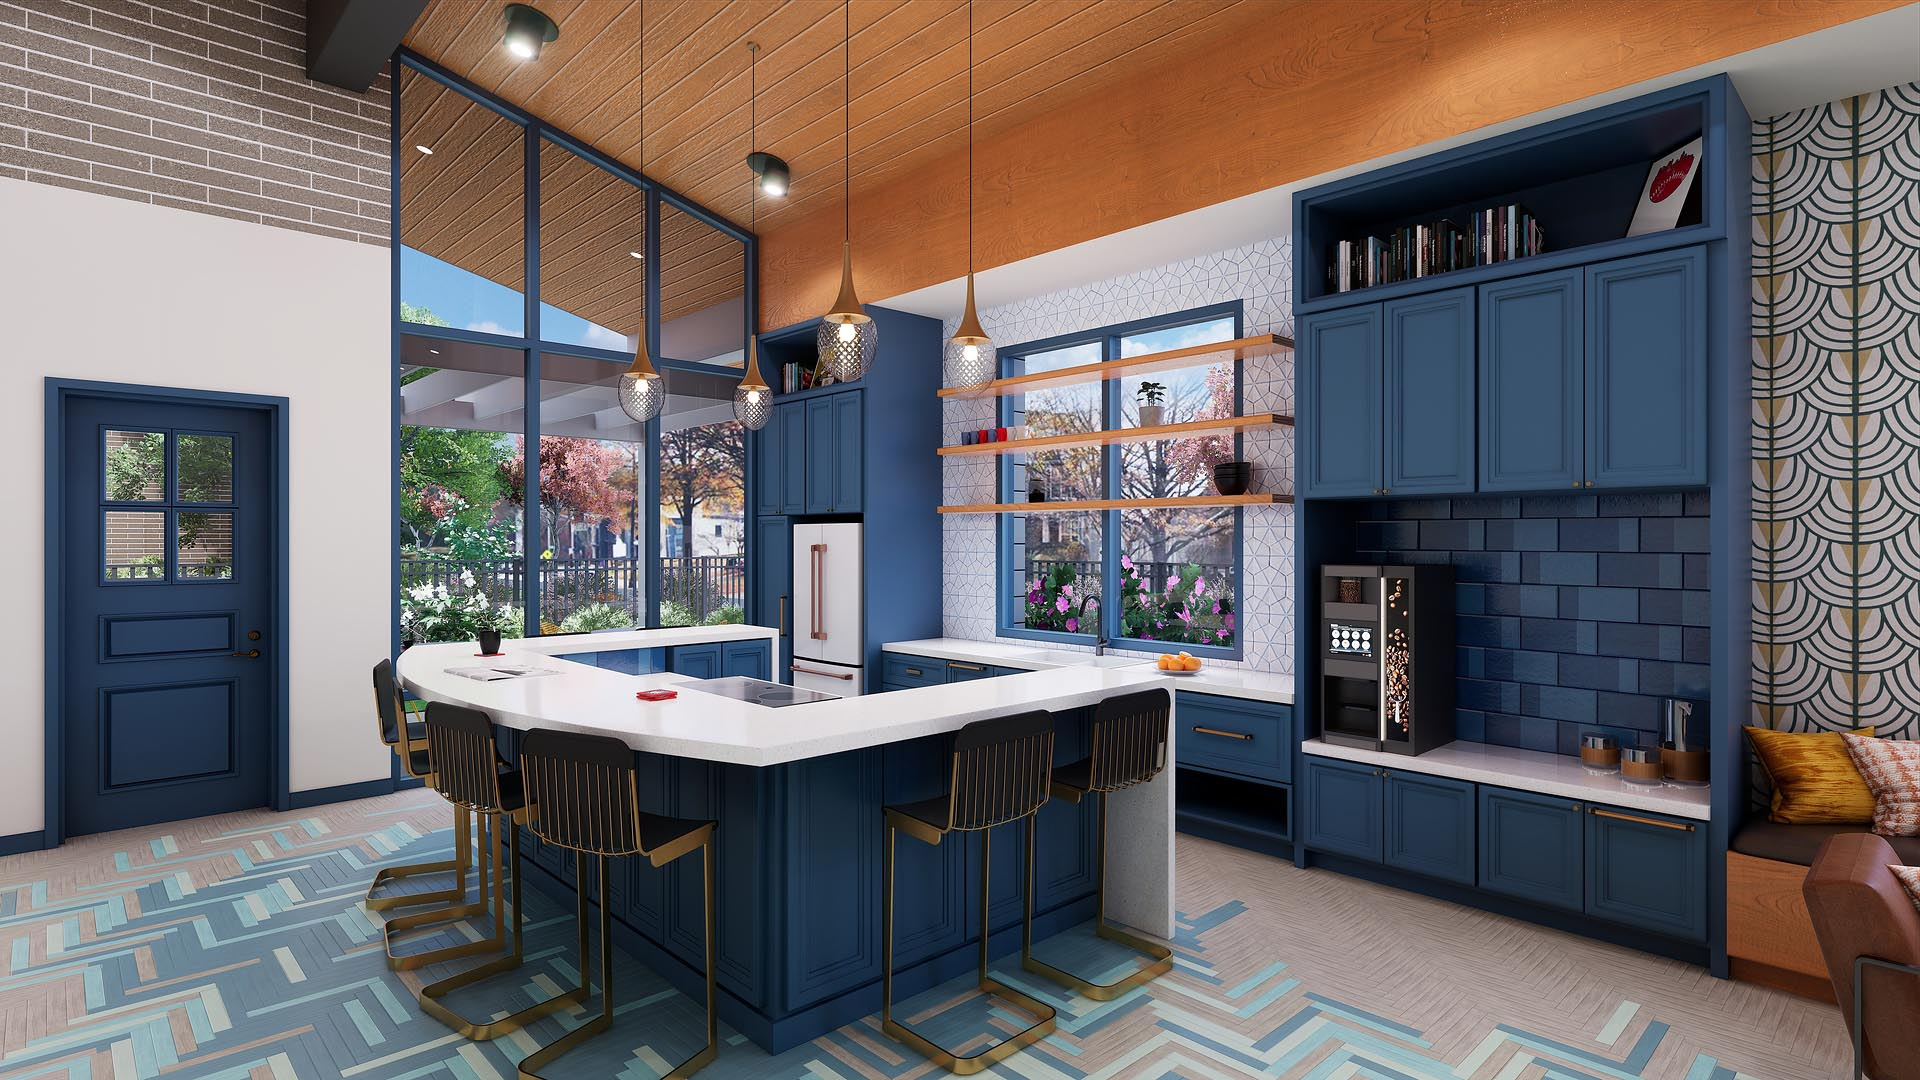 An apartment clubhouse luxury chef's kitchen